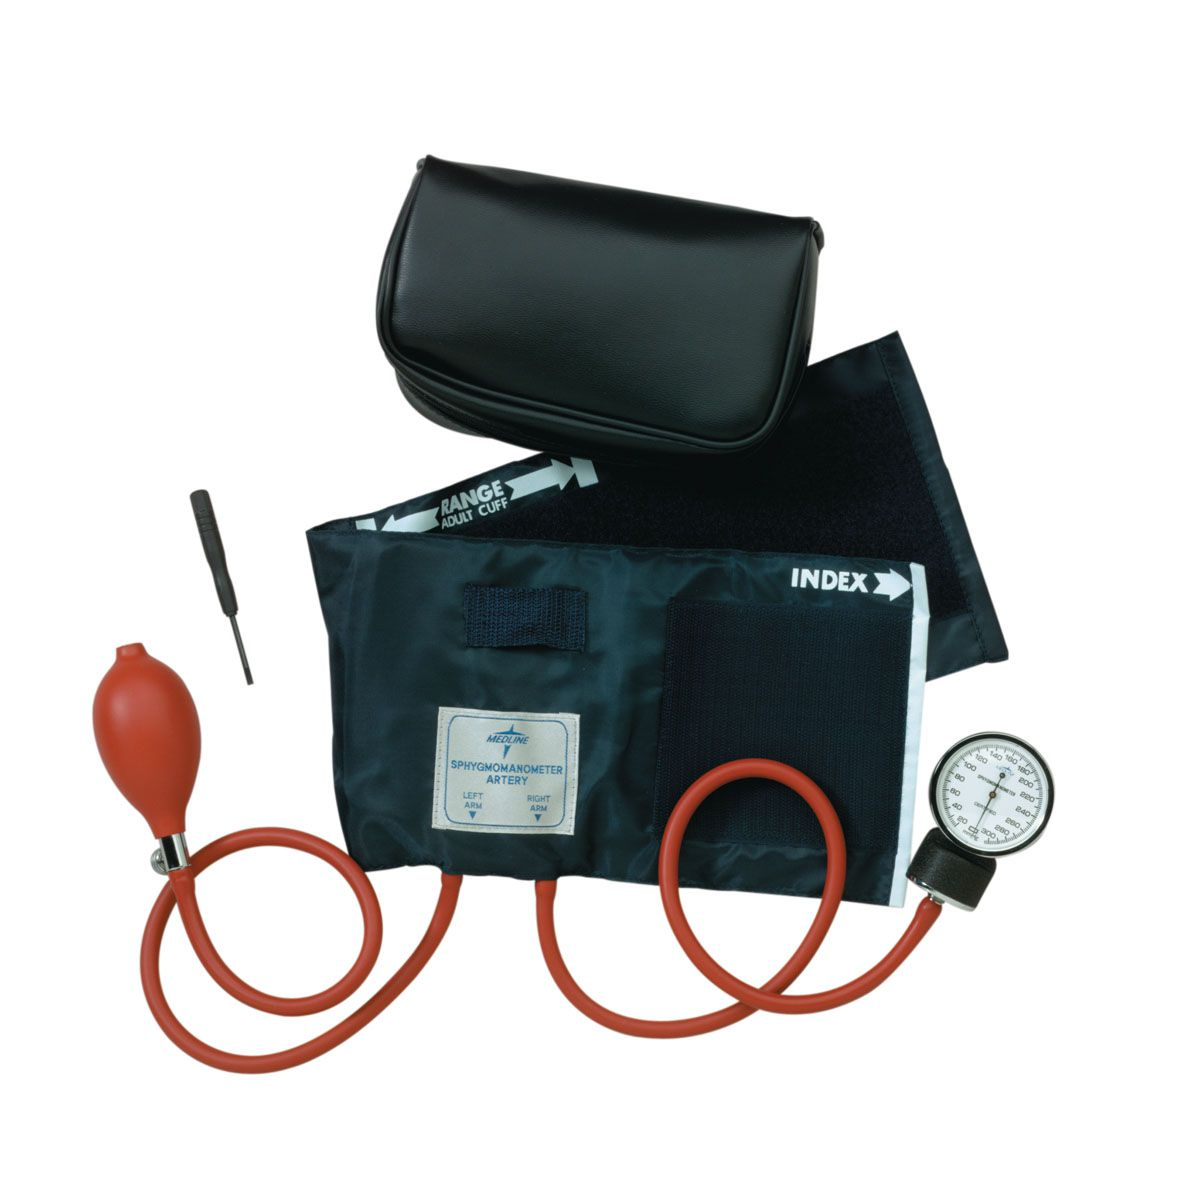 Medline Neoprene Handheld Aneroid Sphygmomanometer - Hand Held, Adult, Each - Model MDS9380LF